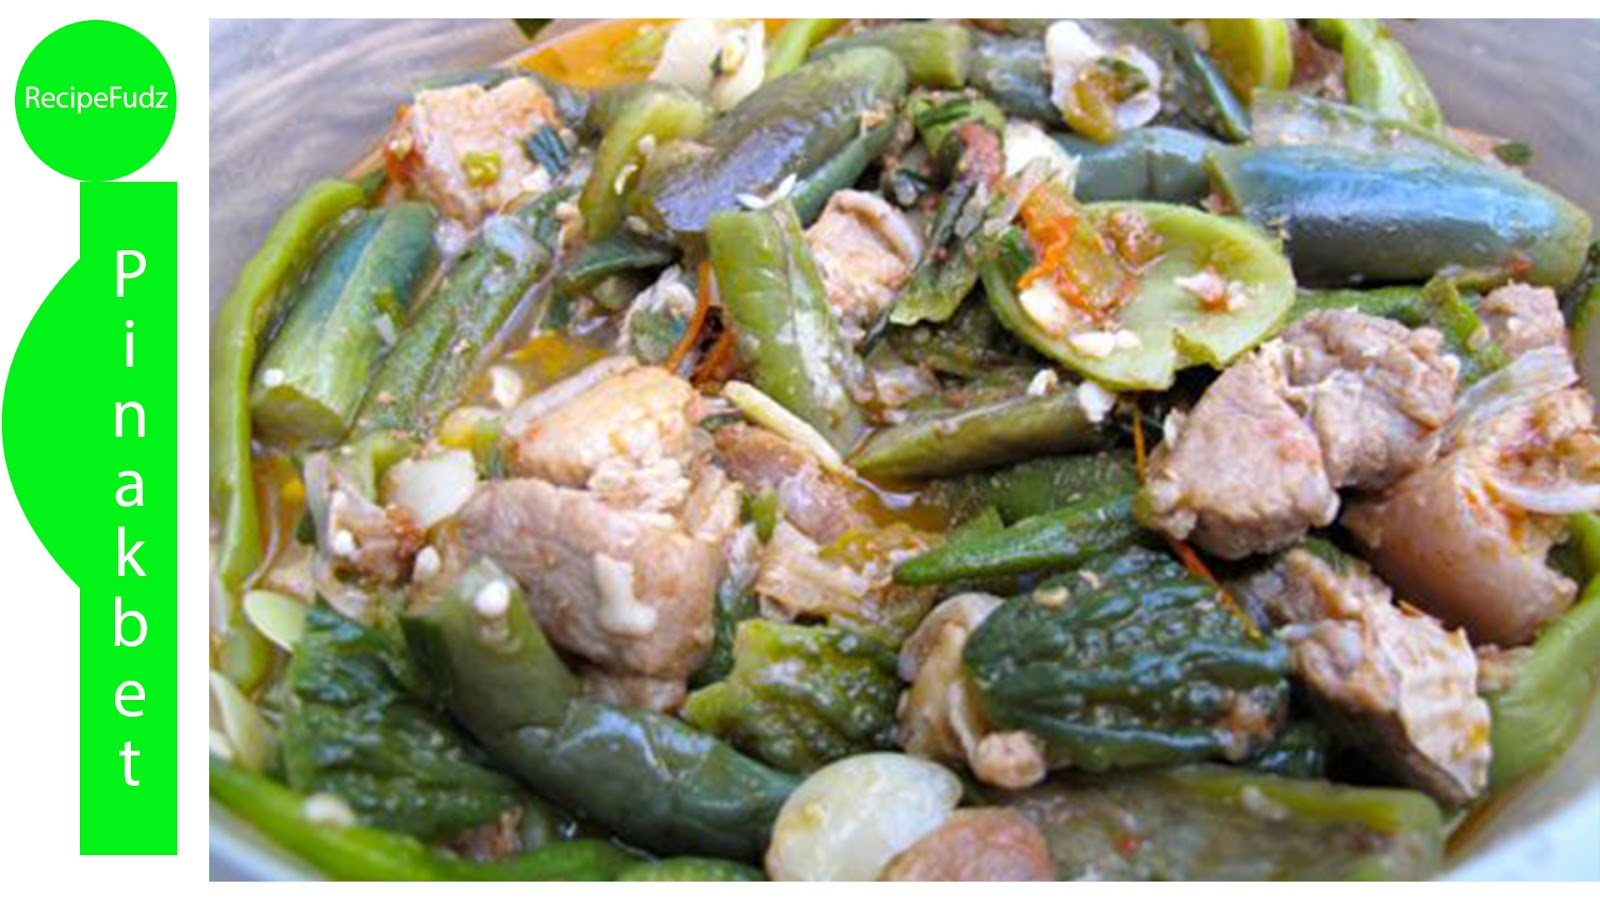 Recipefudz Pinakbet Ilocano Recipe